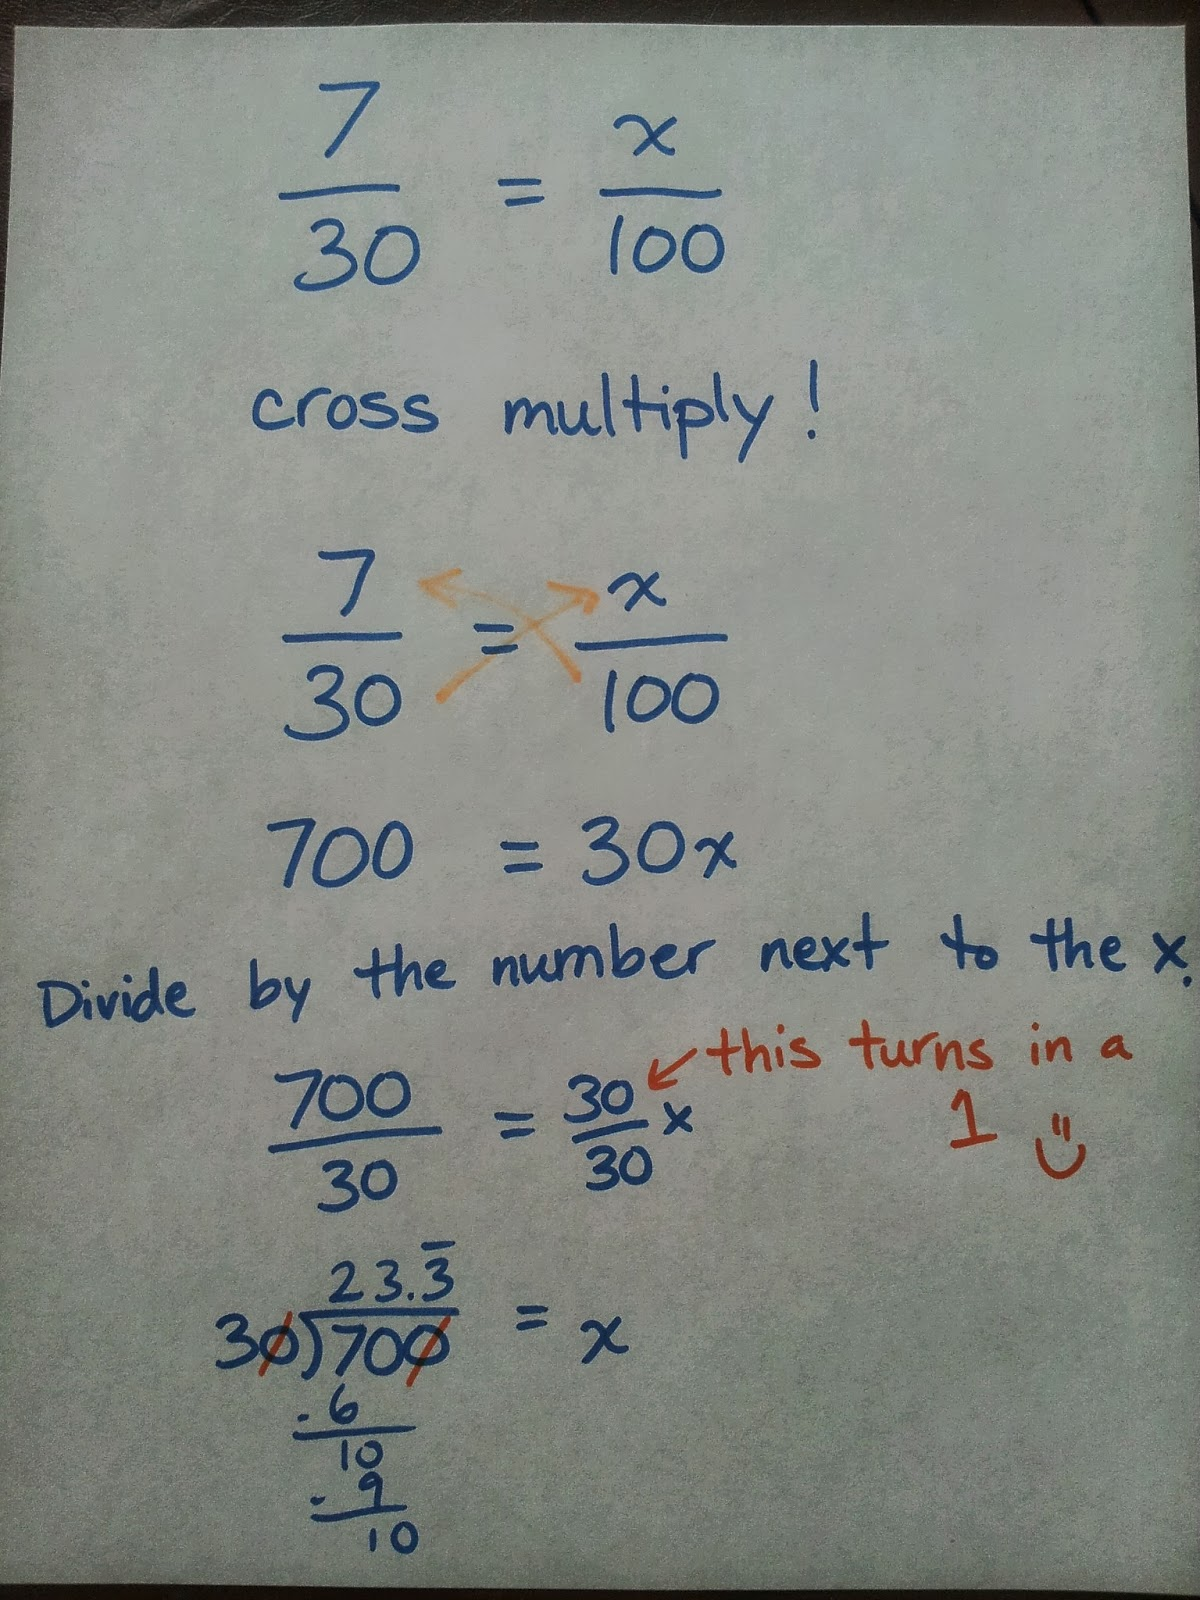 Worksheet Learn Percentages kids math teacher activity thursday with percentages i know that children at about age 9 and above can understand this if they have a basic understanding of number concepts multiplication an